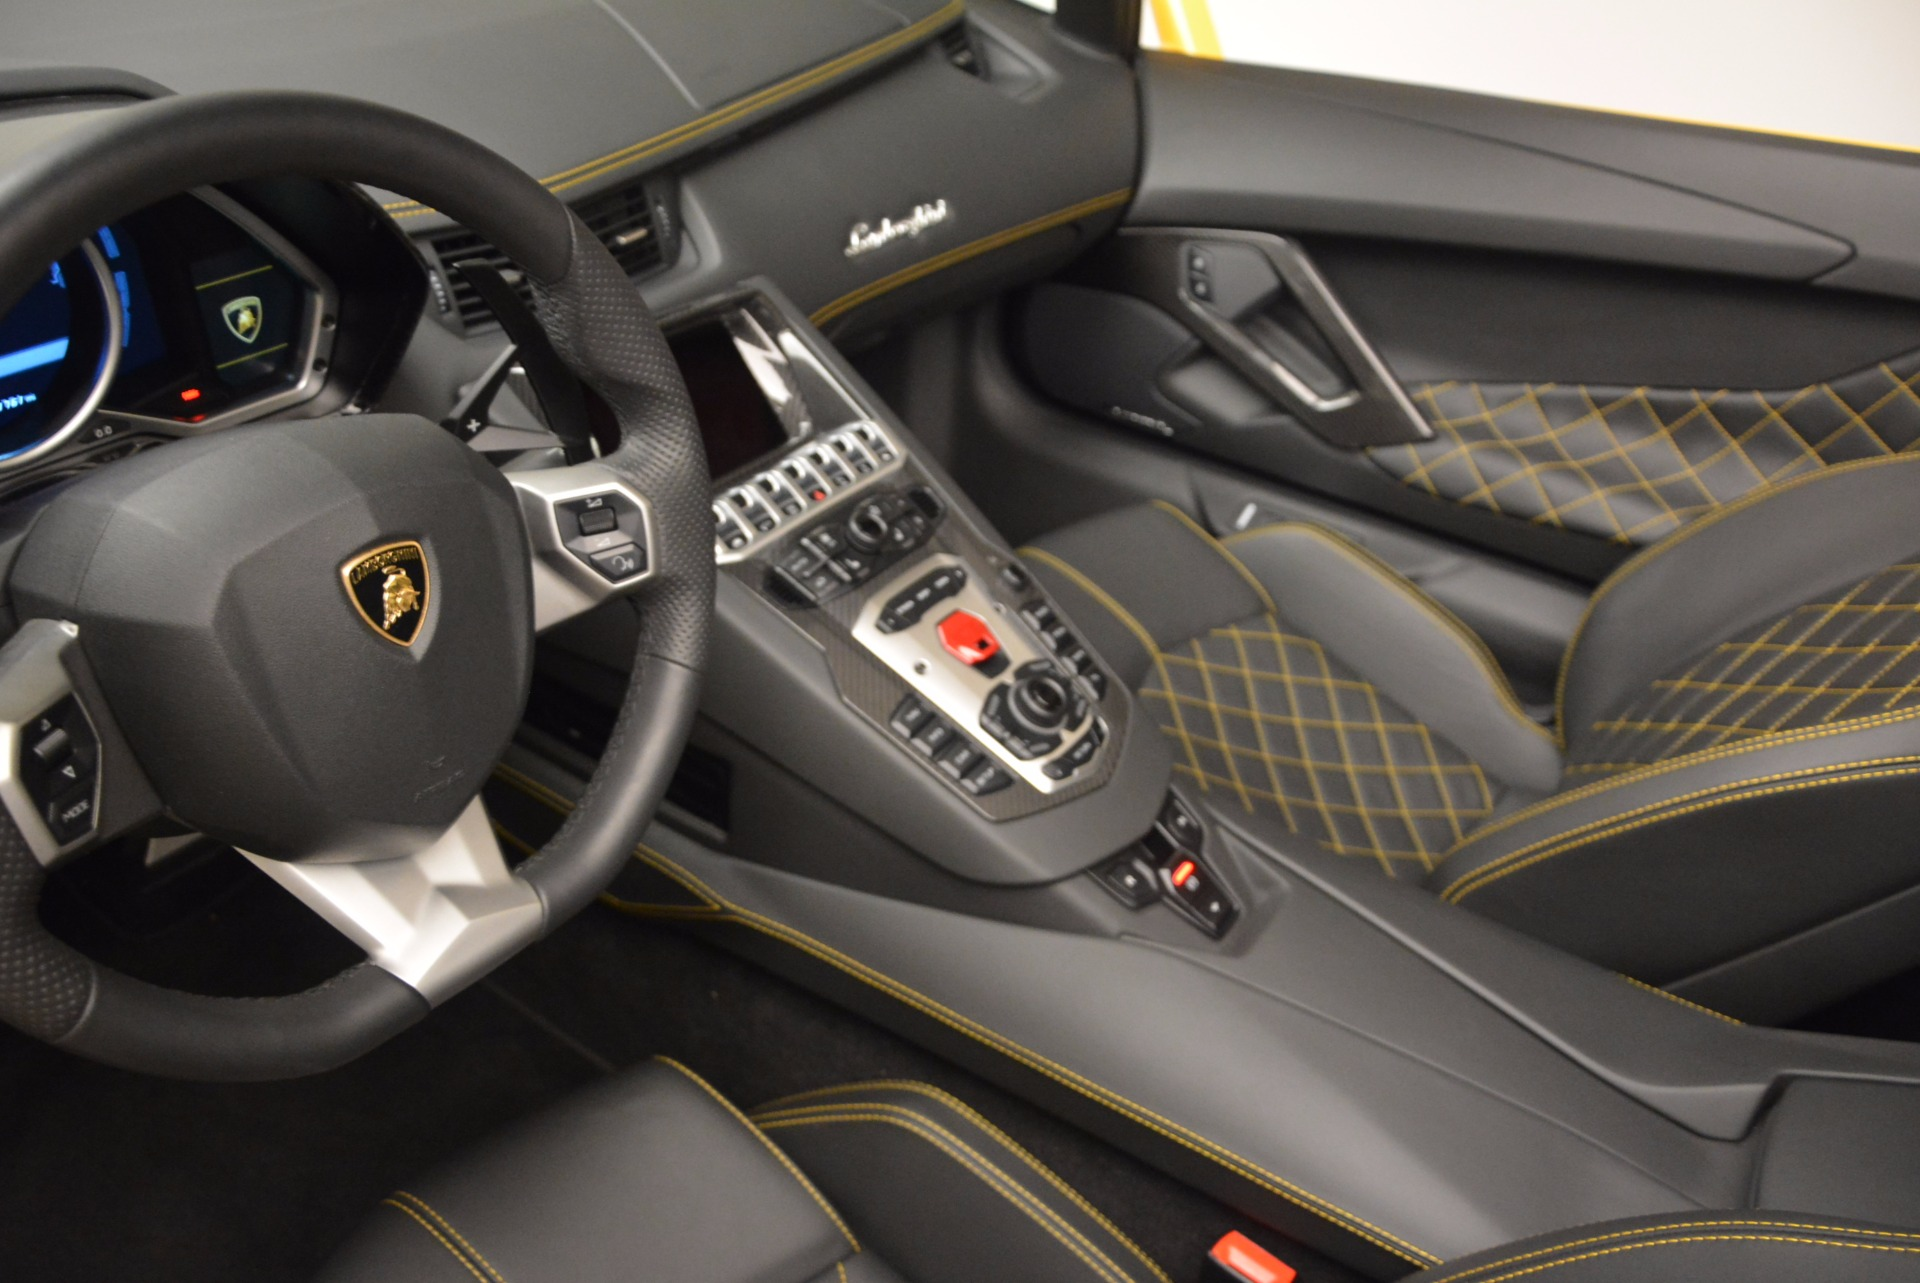 Used 2015 Lamborghini Aventador LP 700-4 Roadster For Sale In Westport, CT 1774_p19